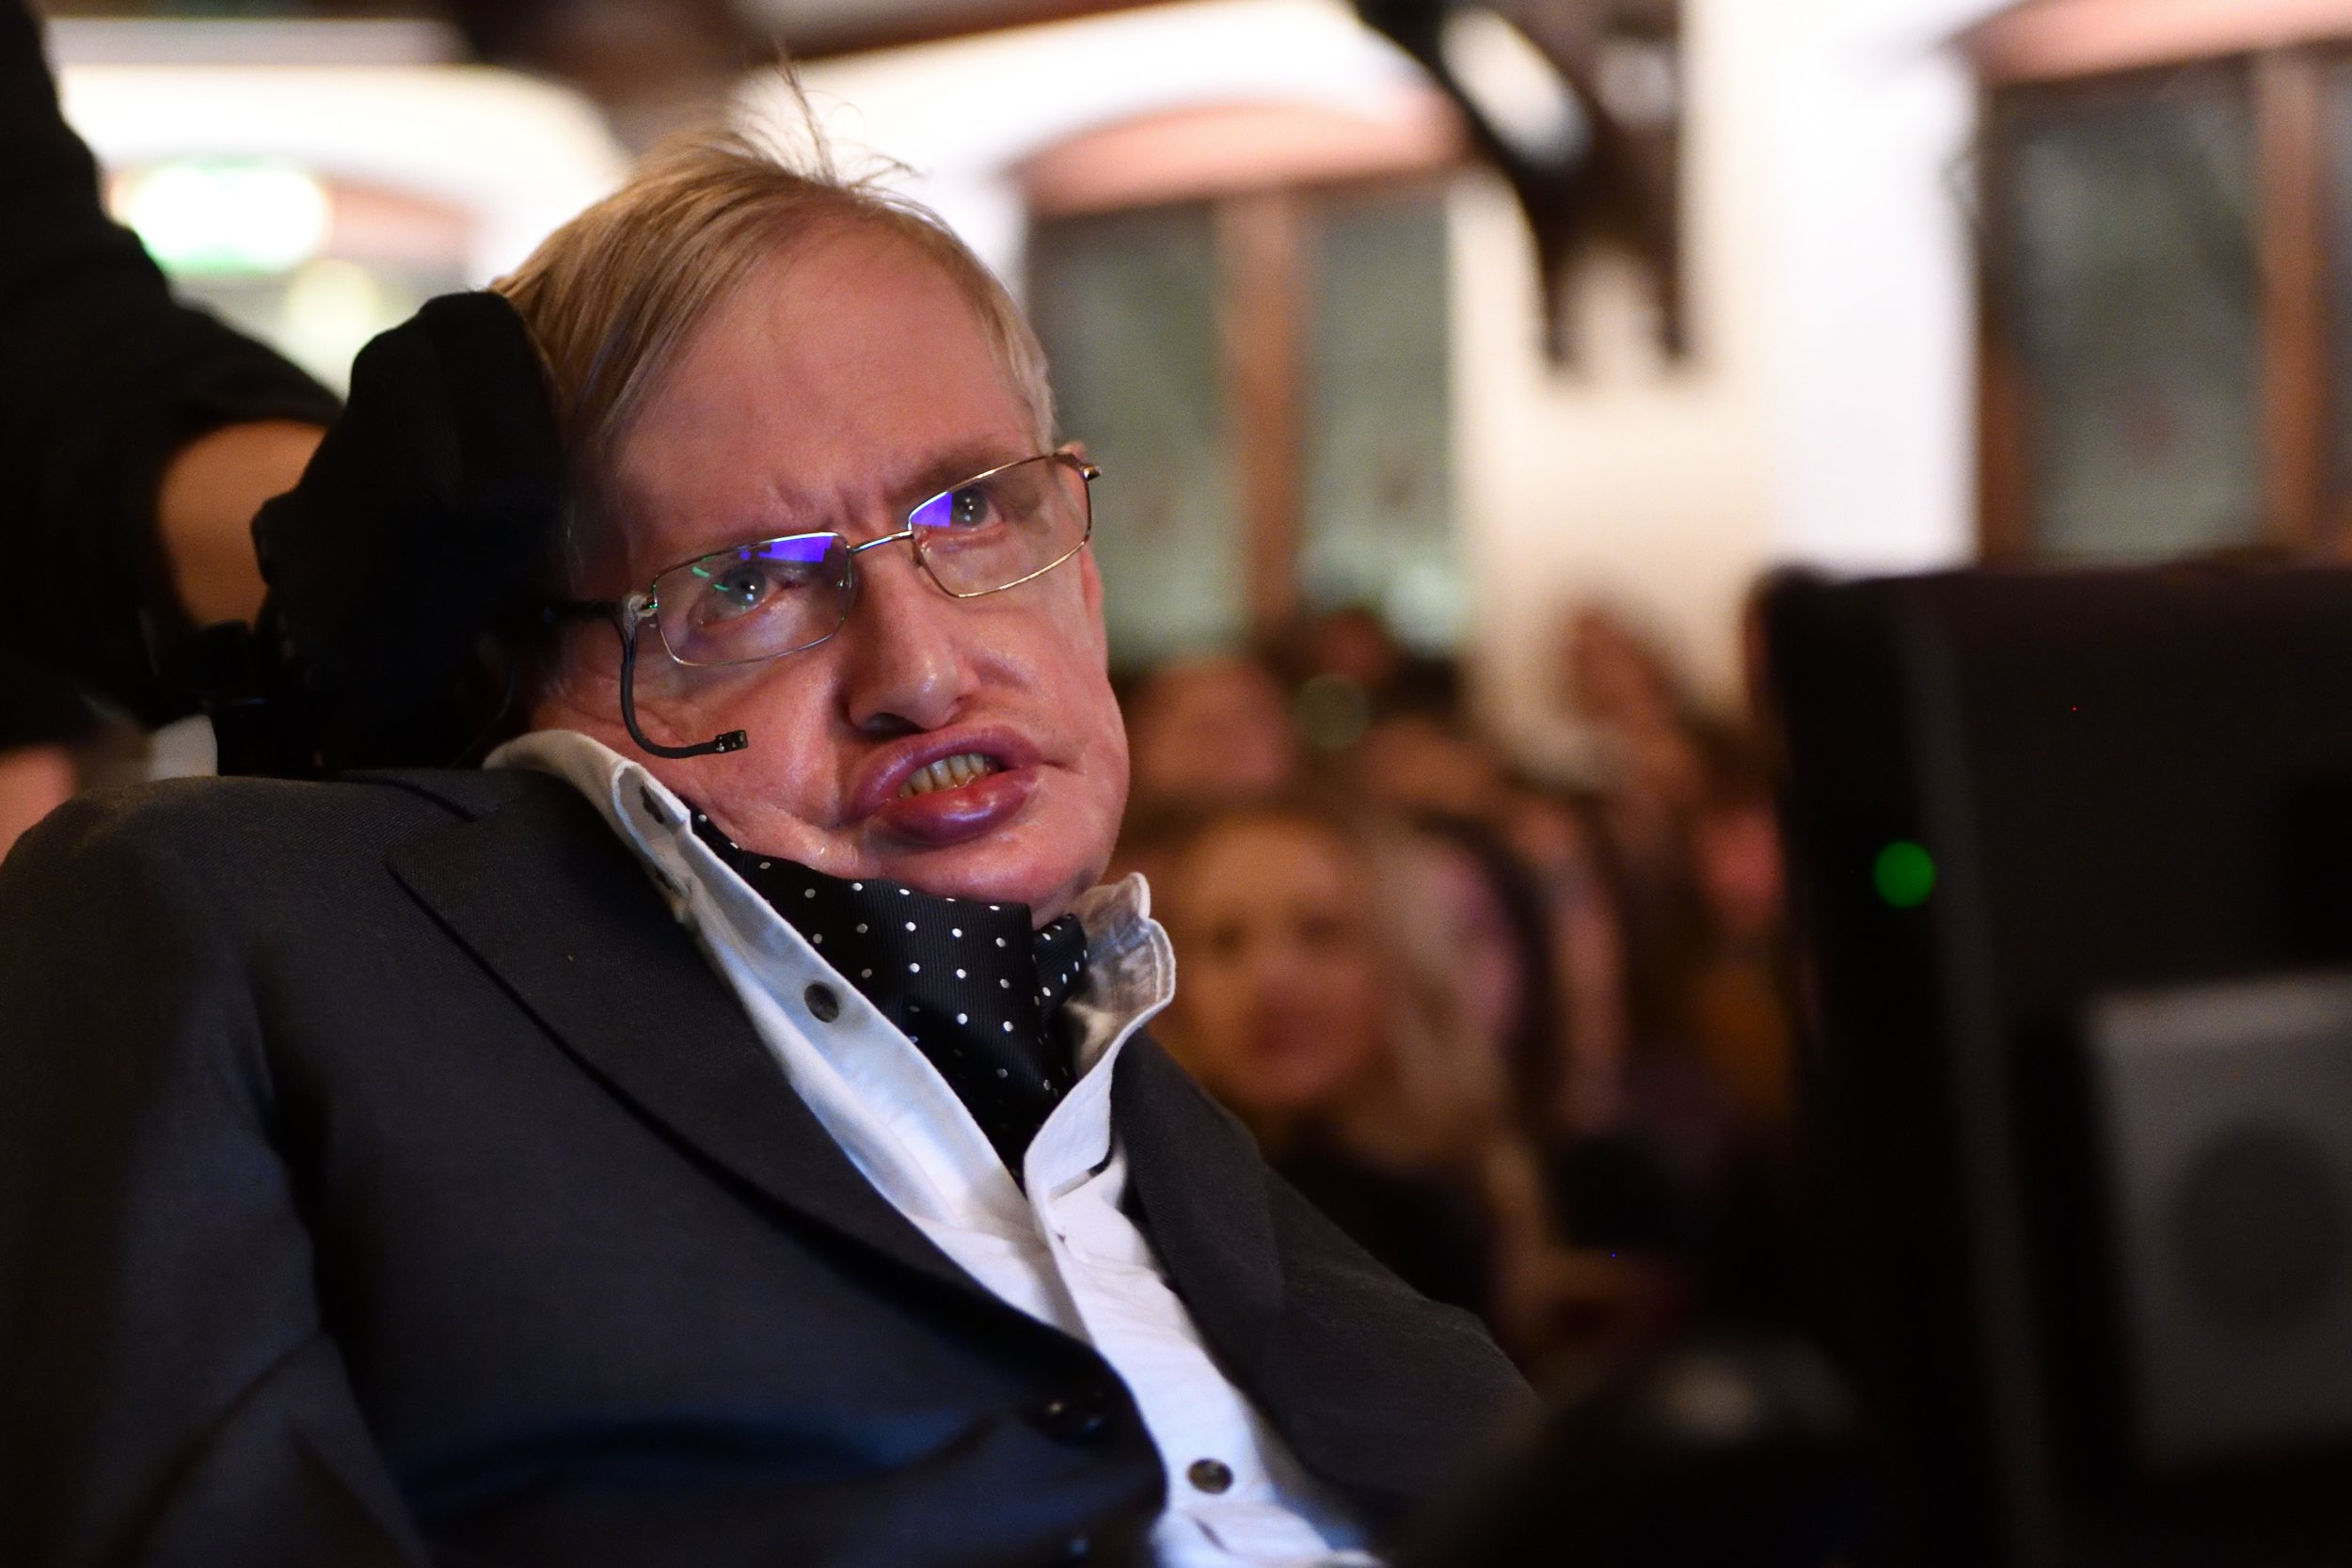 Stephen Hawking age, famous quotes, net worth, wife, children and cause of death